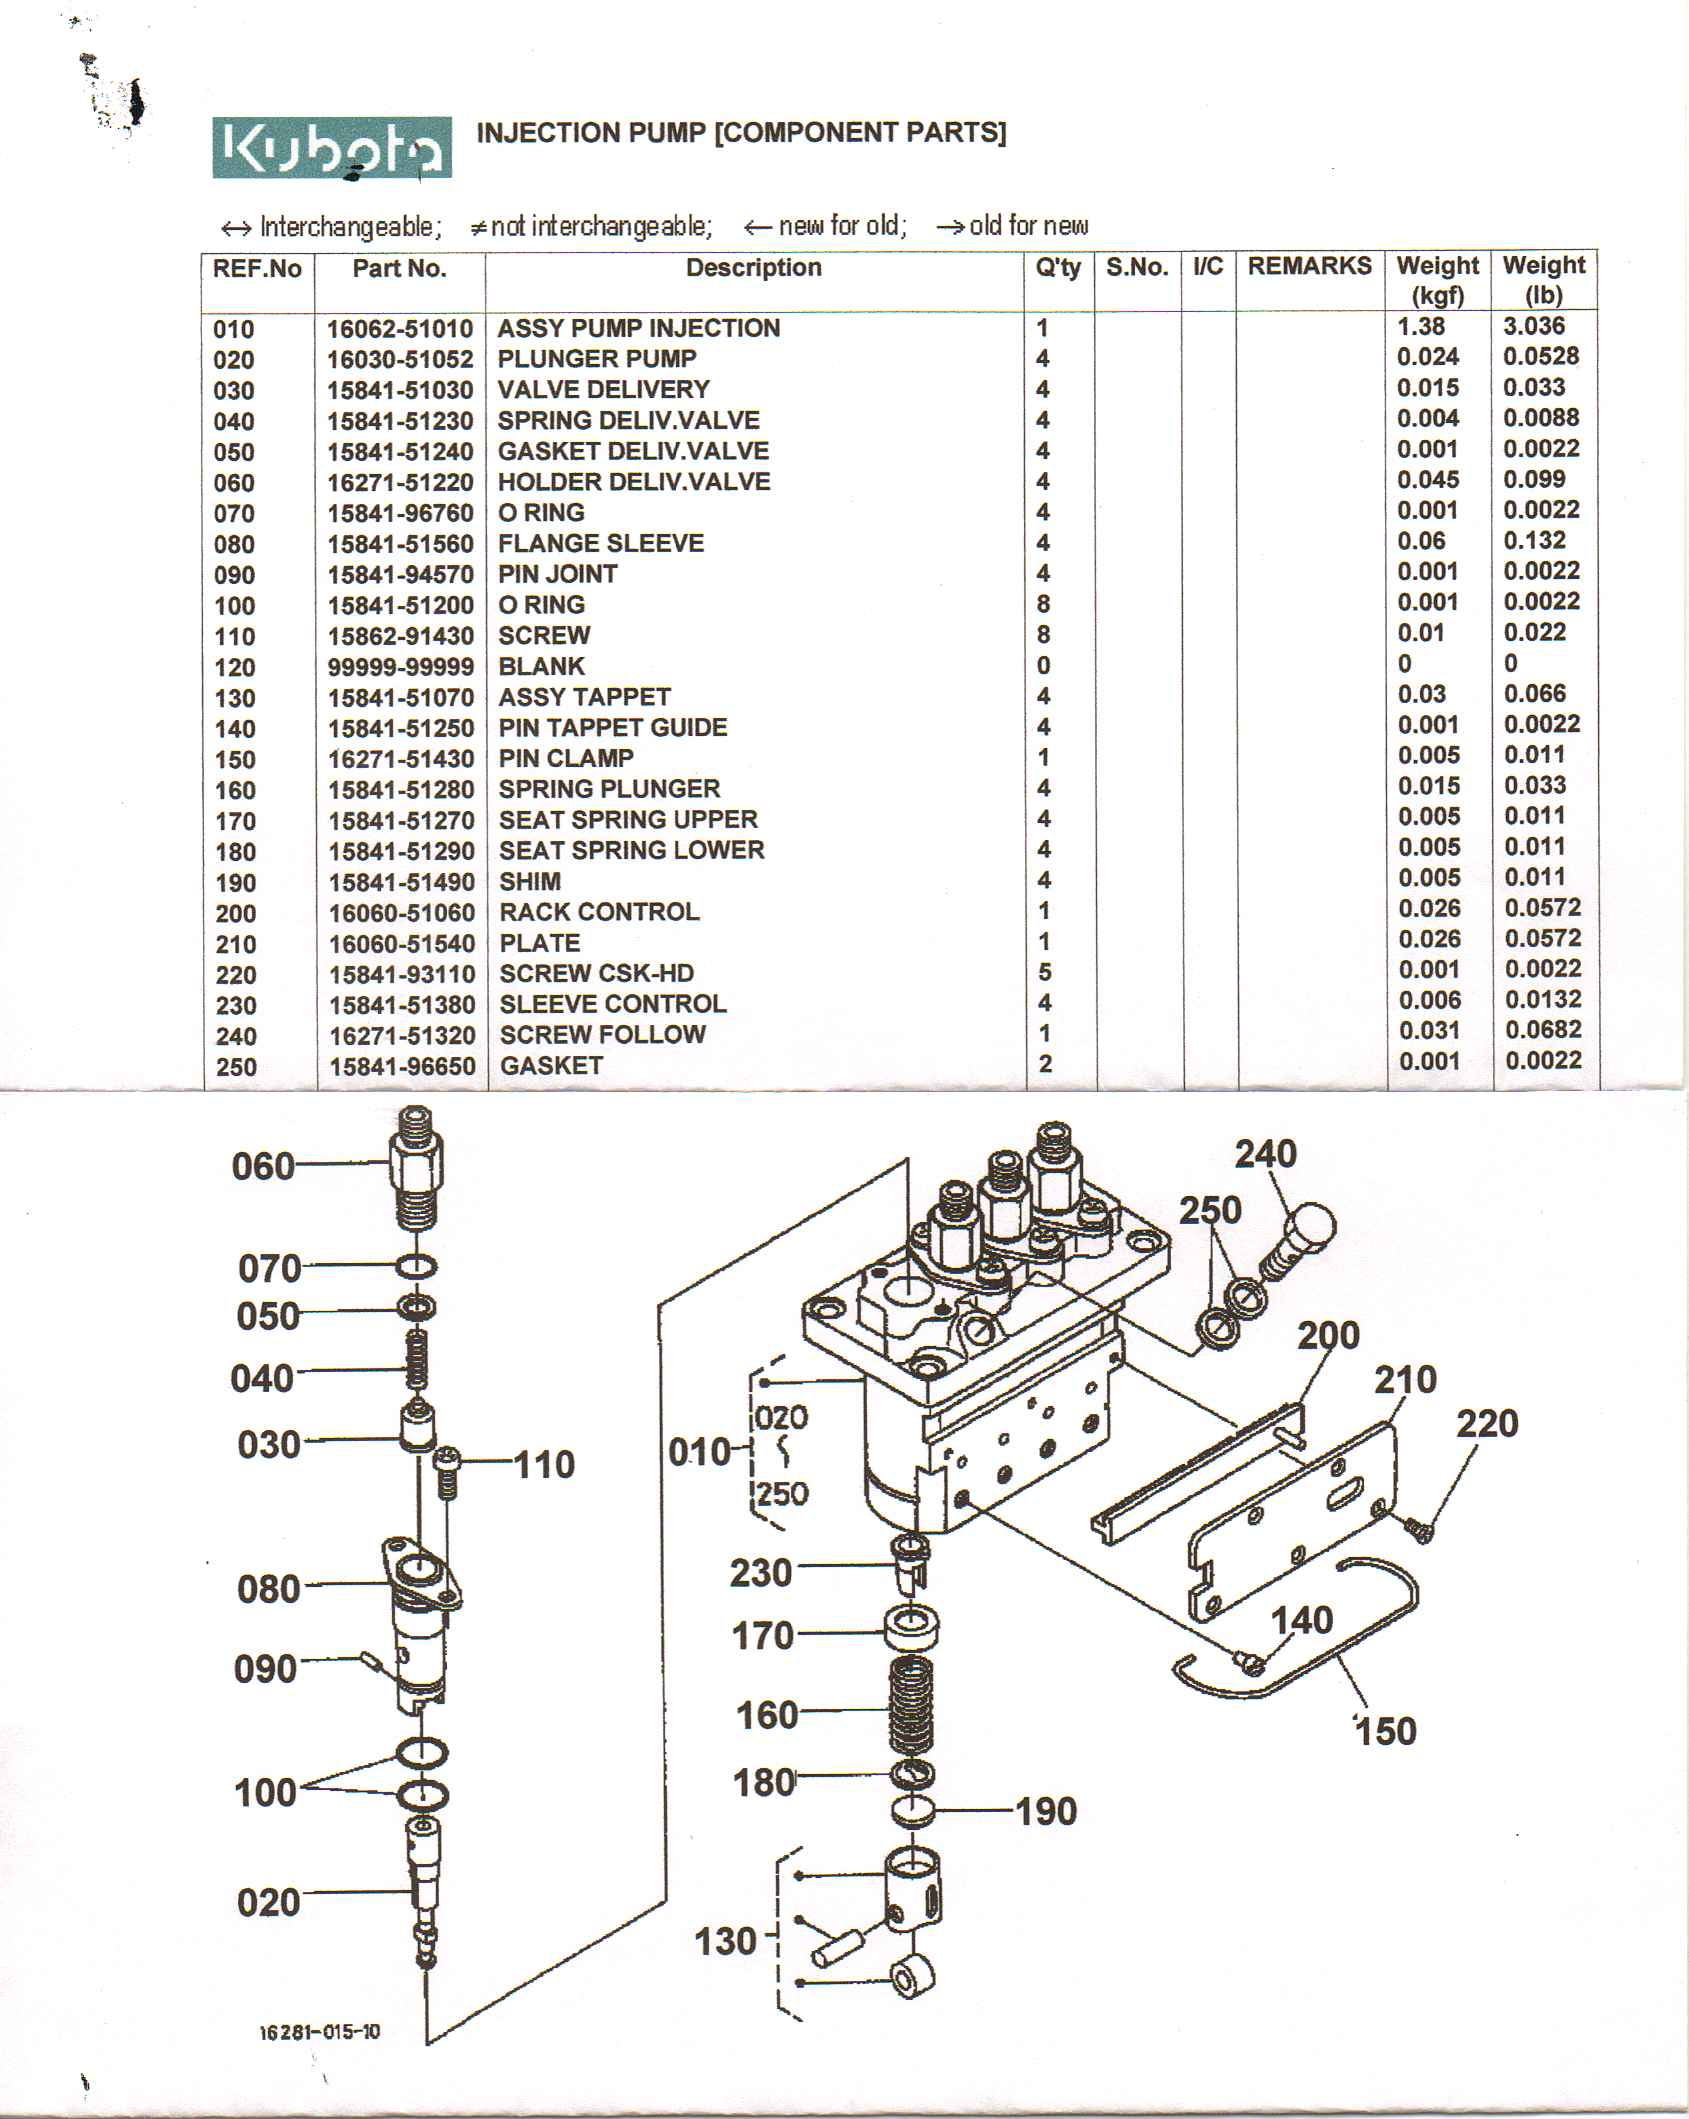 3 pole lighting contactor wiring diagram 3 discover your wiring wiring a bosch dishwasher furnas pressure switch wiring diagram